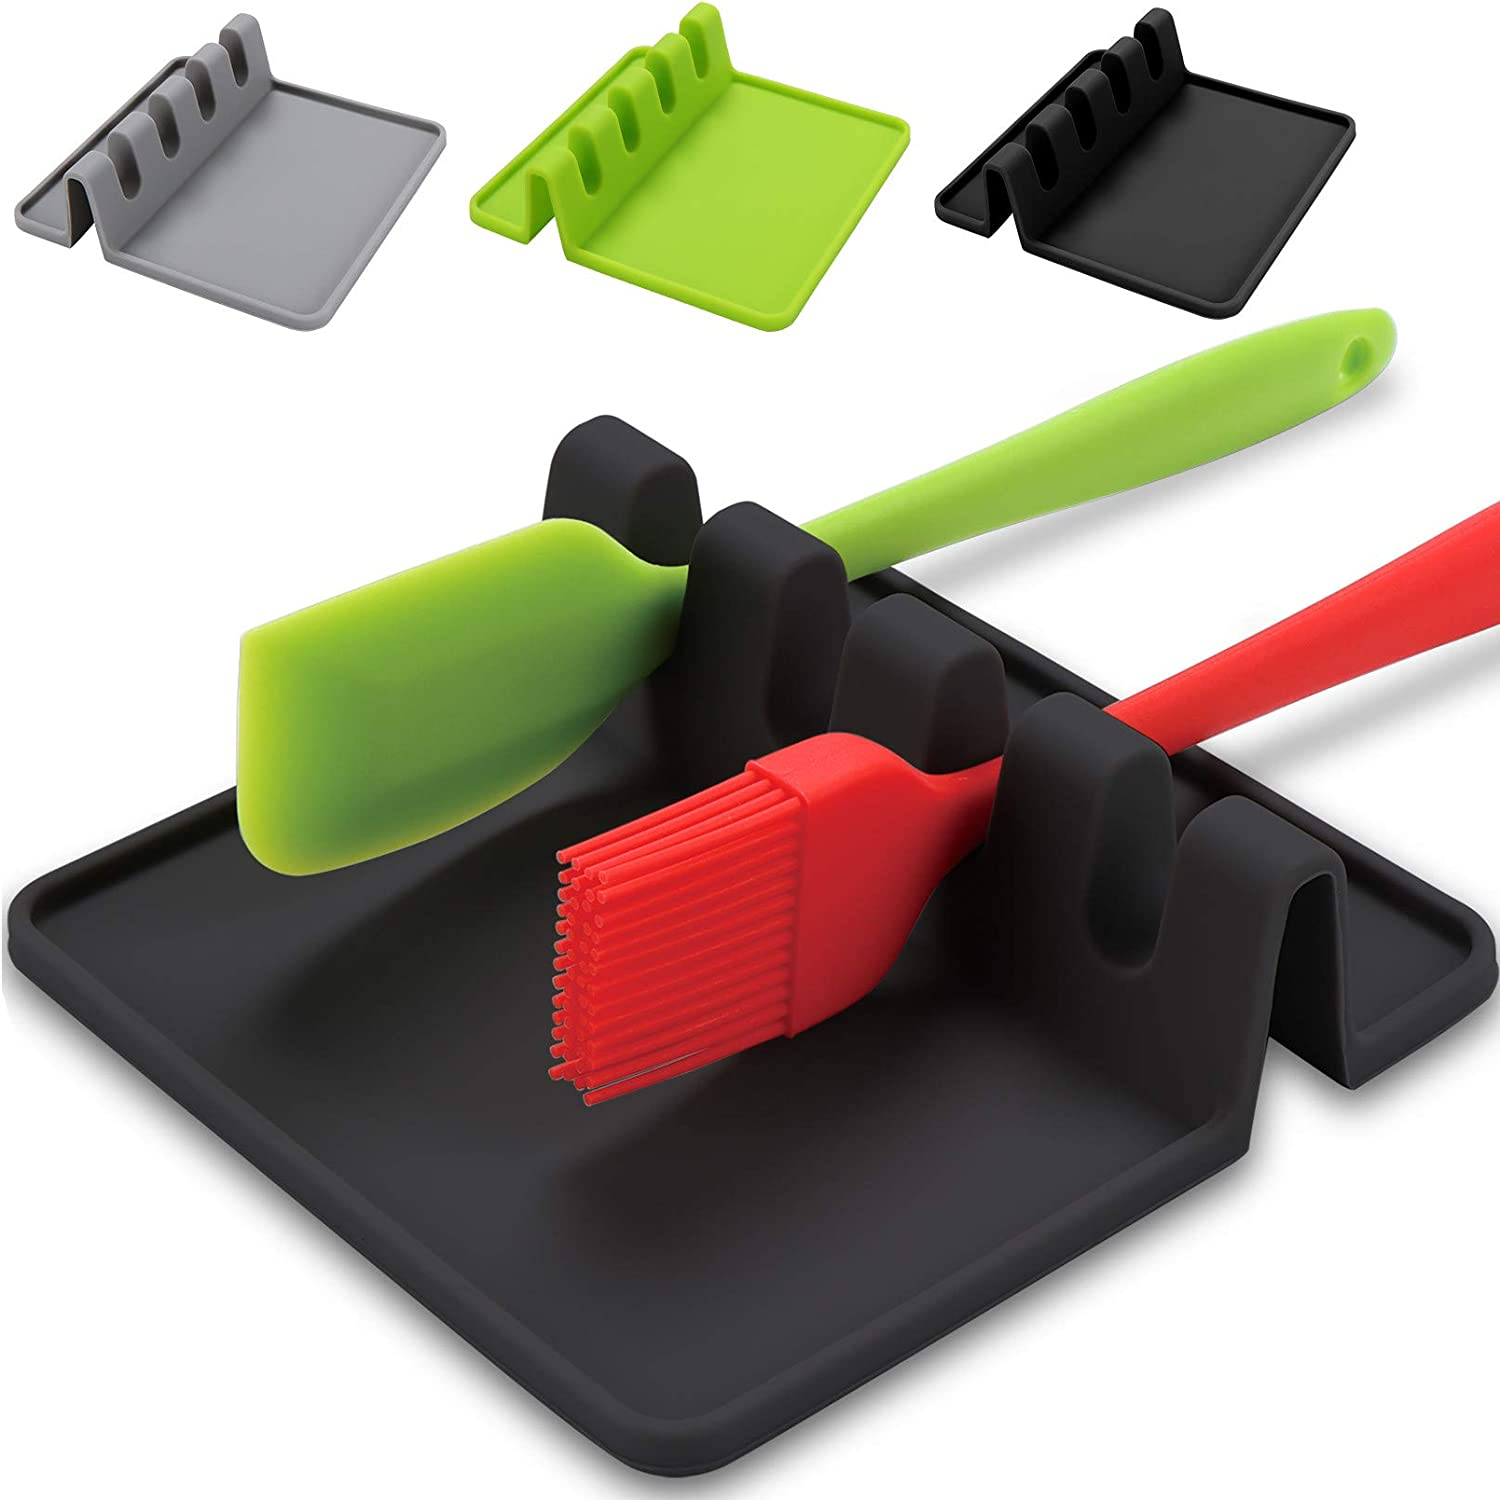 Silicone Utensil Rest with Drip Pad for Multiple Utensils,BPA-Free Spoon Rest & Spoon Holder for Stove Top,Heat-Resistant,Kitchen Utensil Holder for Spoons, Ladles, Tongs & More,By Sinnsally (Black)